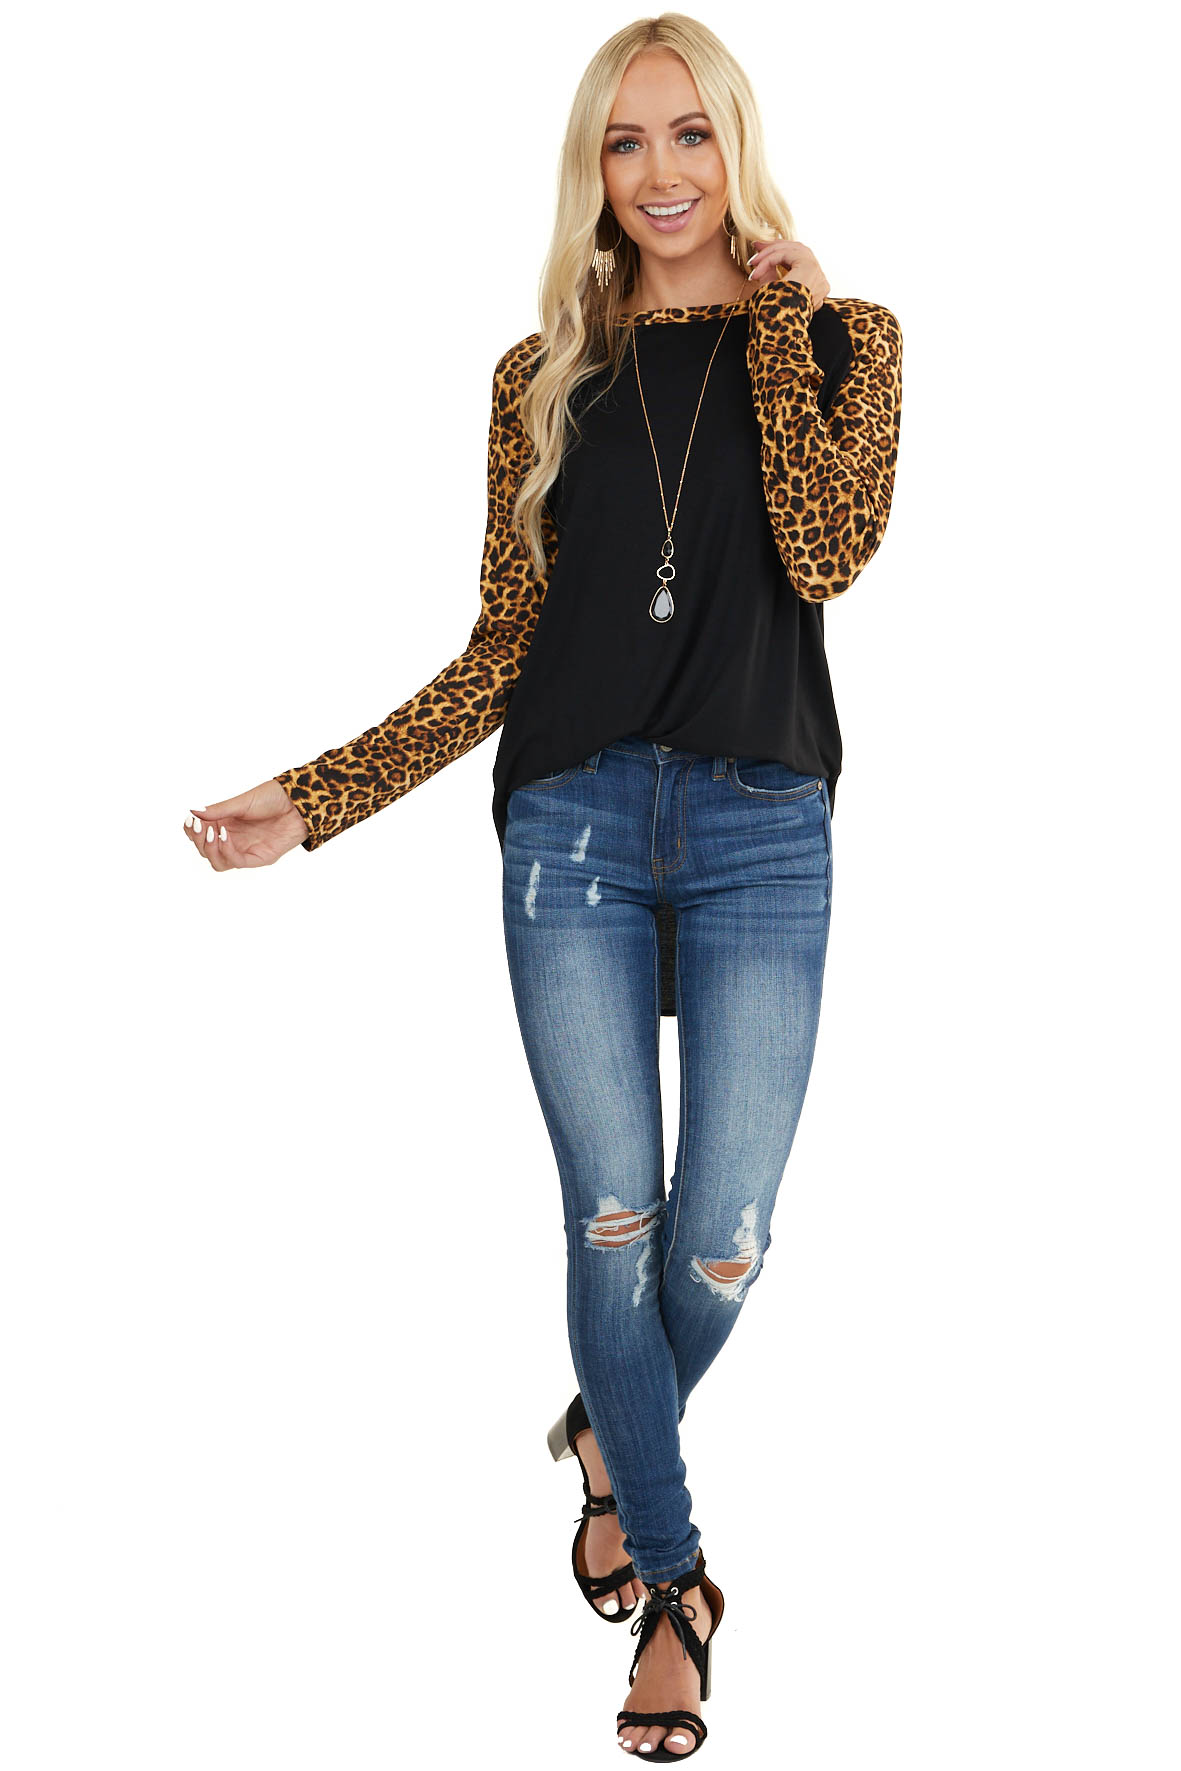 Black Lightweight Knit Top with Long Cheetah Print Sleeves